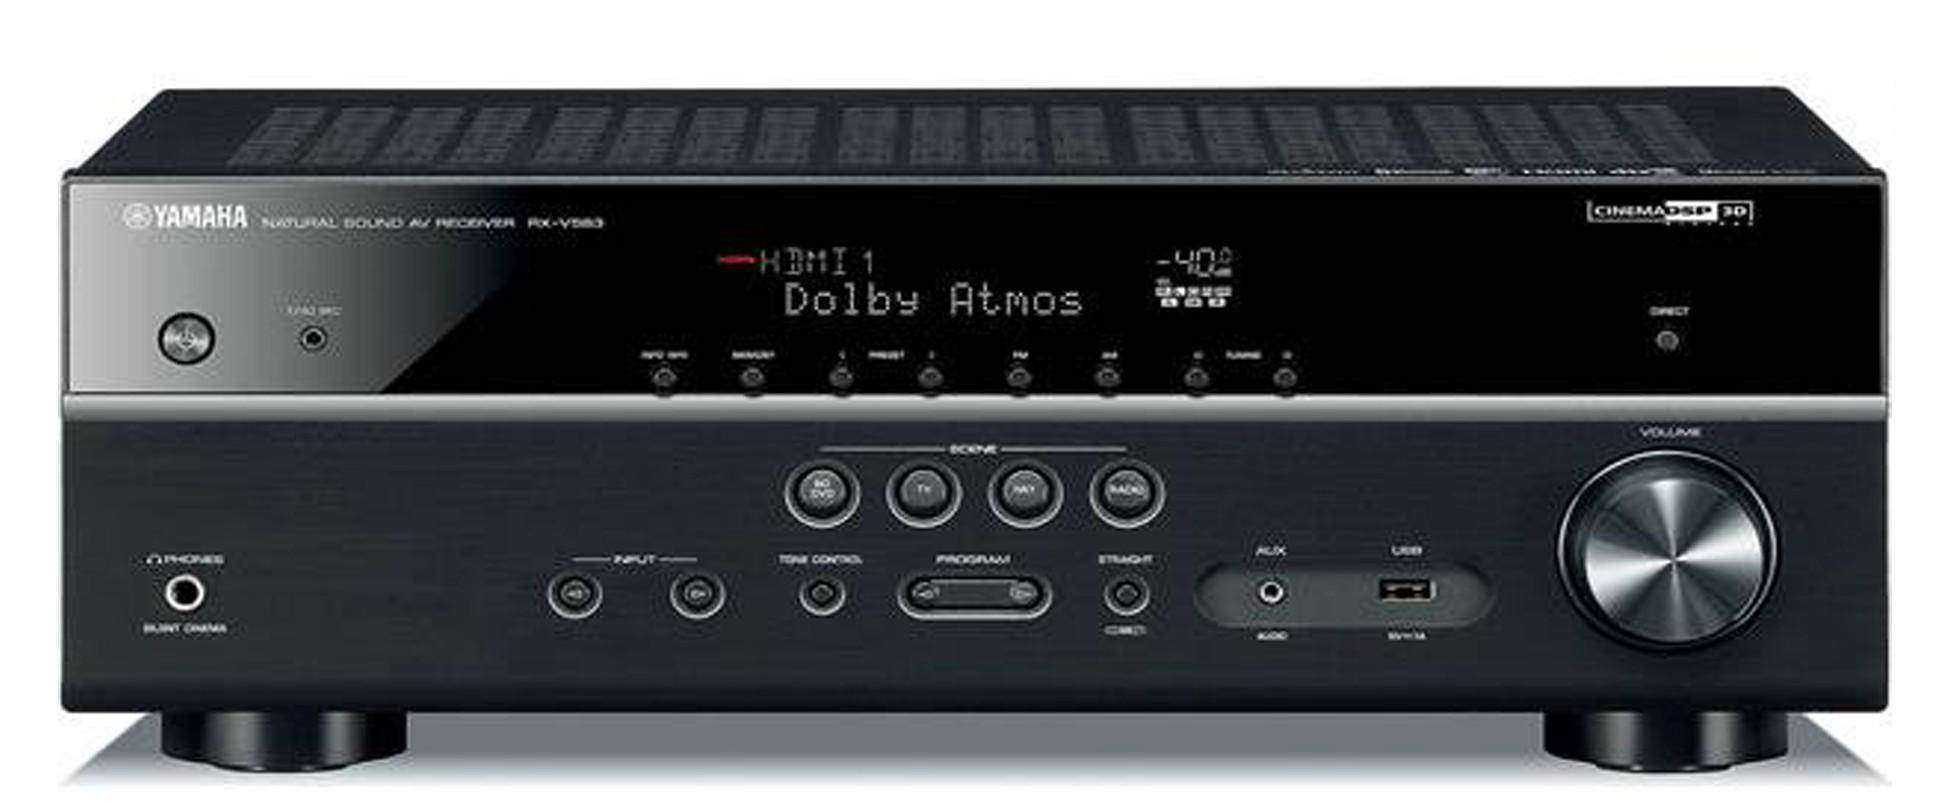 Yamaha receiver amplifiers receivers audio video for Yamaha audio customer service